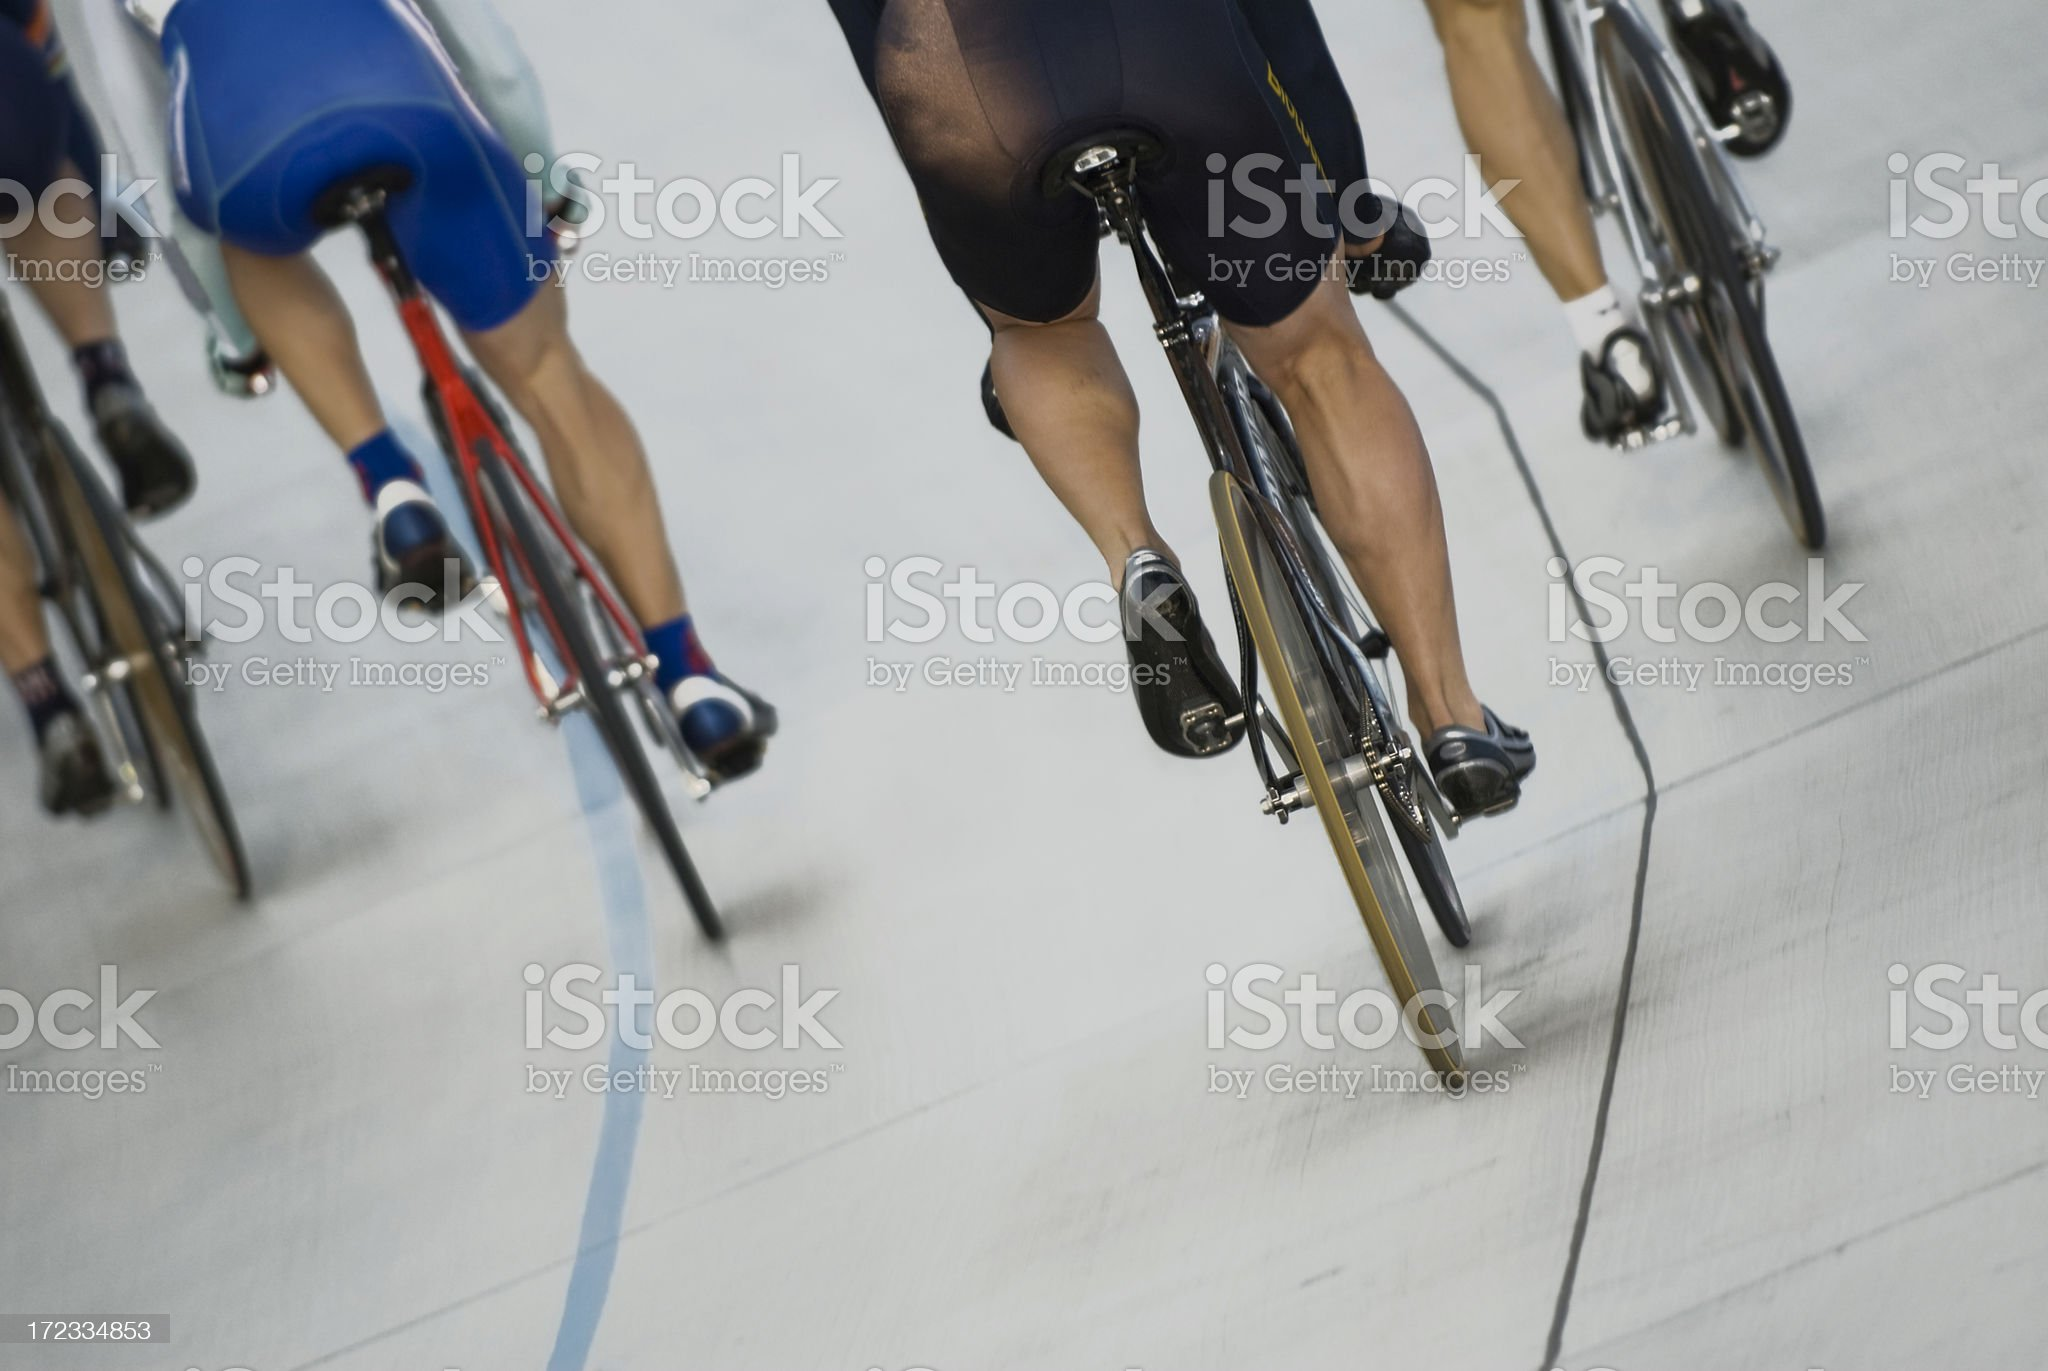 Bicycle Race on Track royalty-free stock photo